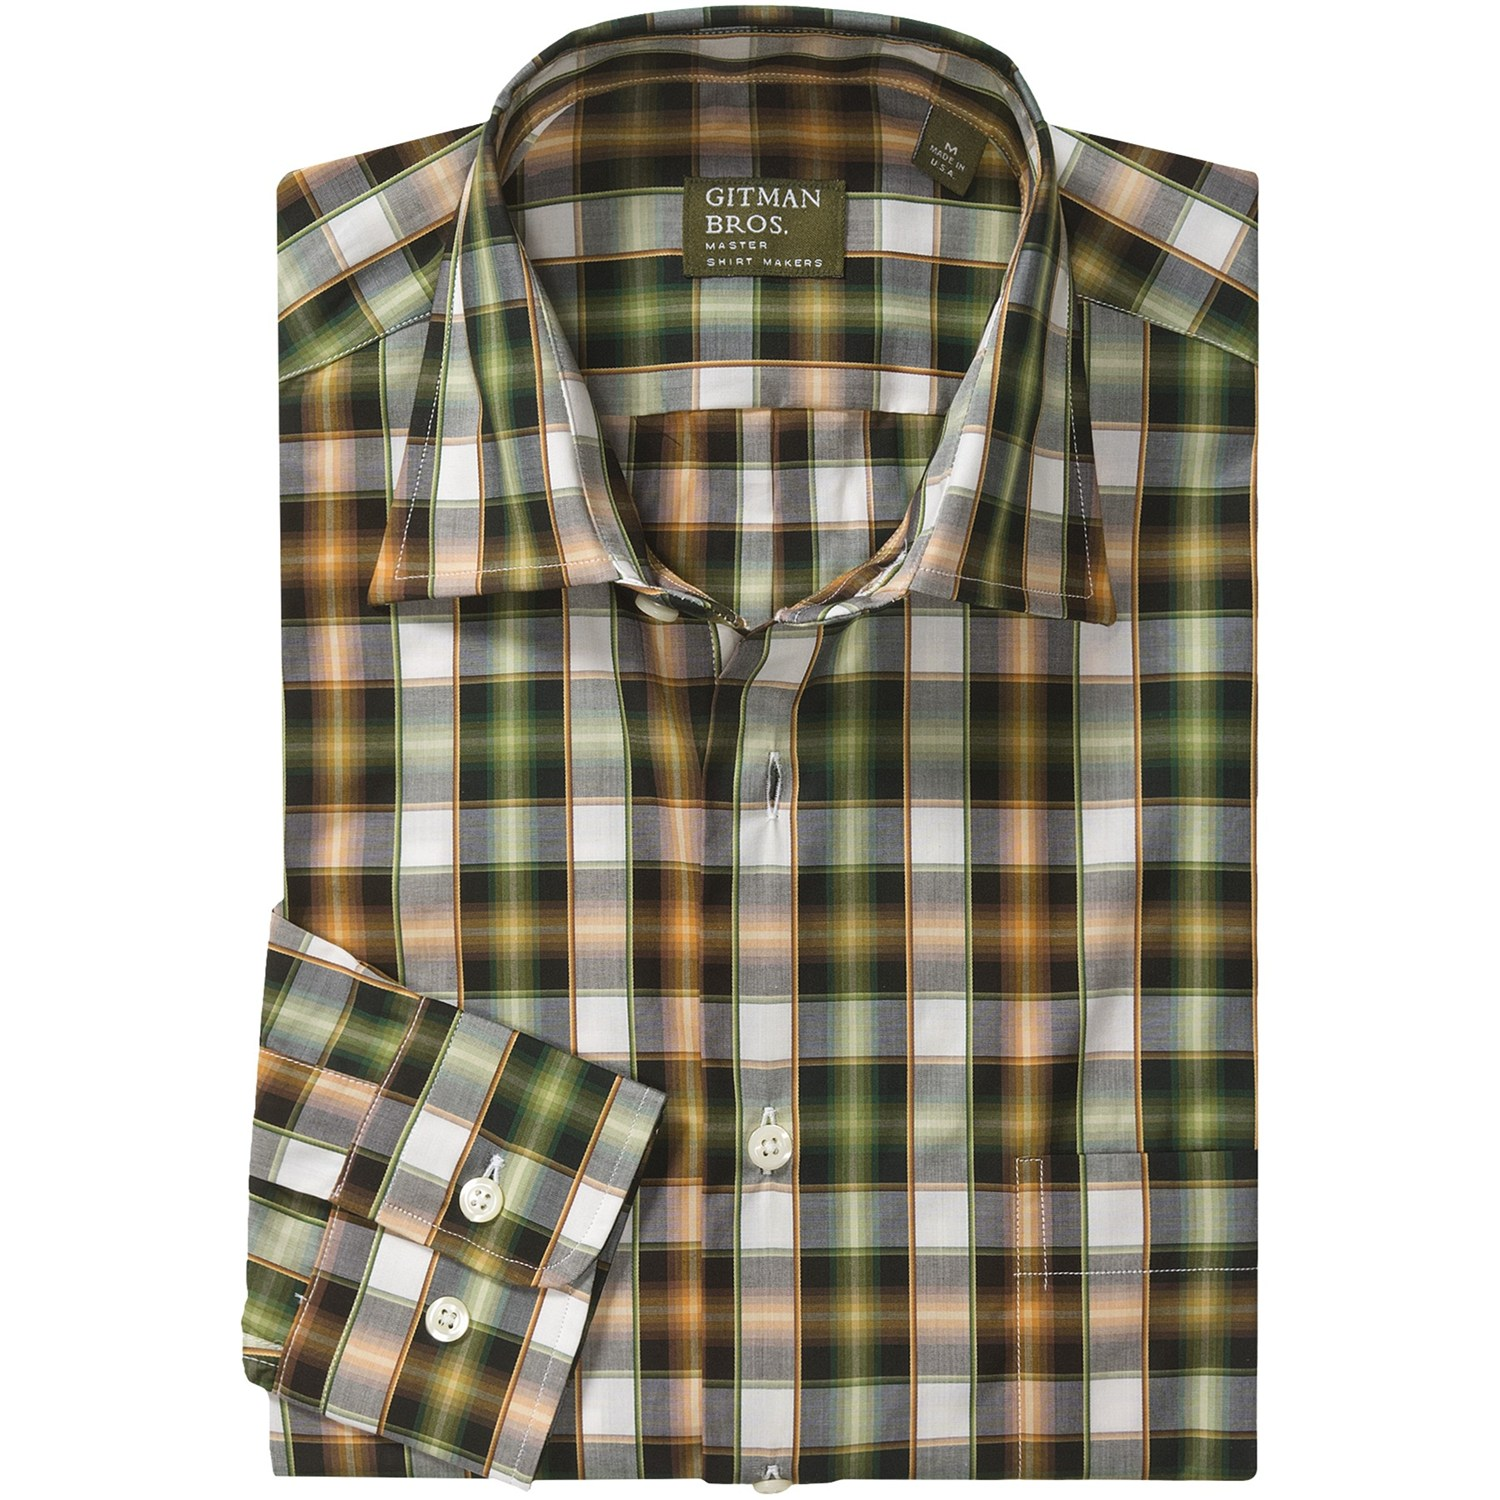 gitman-brothers-check-sport-shirt-long-sleeve-for-men-in-greens-browns-white-check~p~4739g_14~1500.jpg